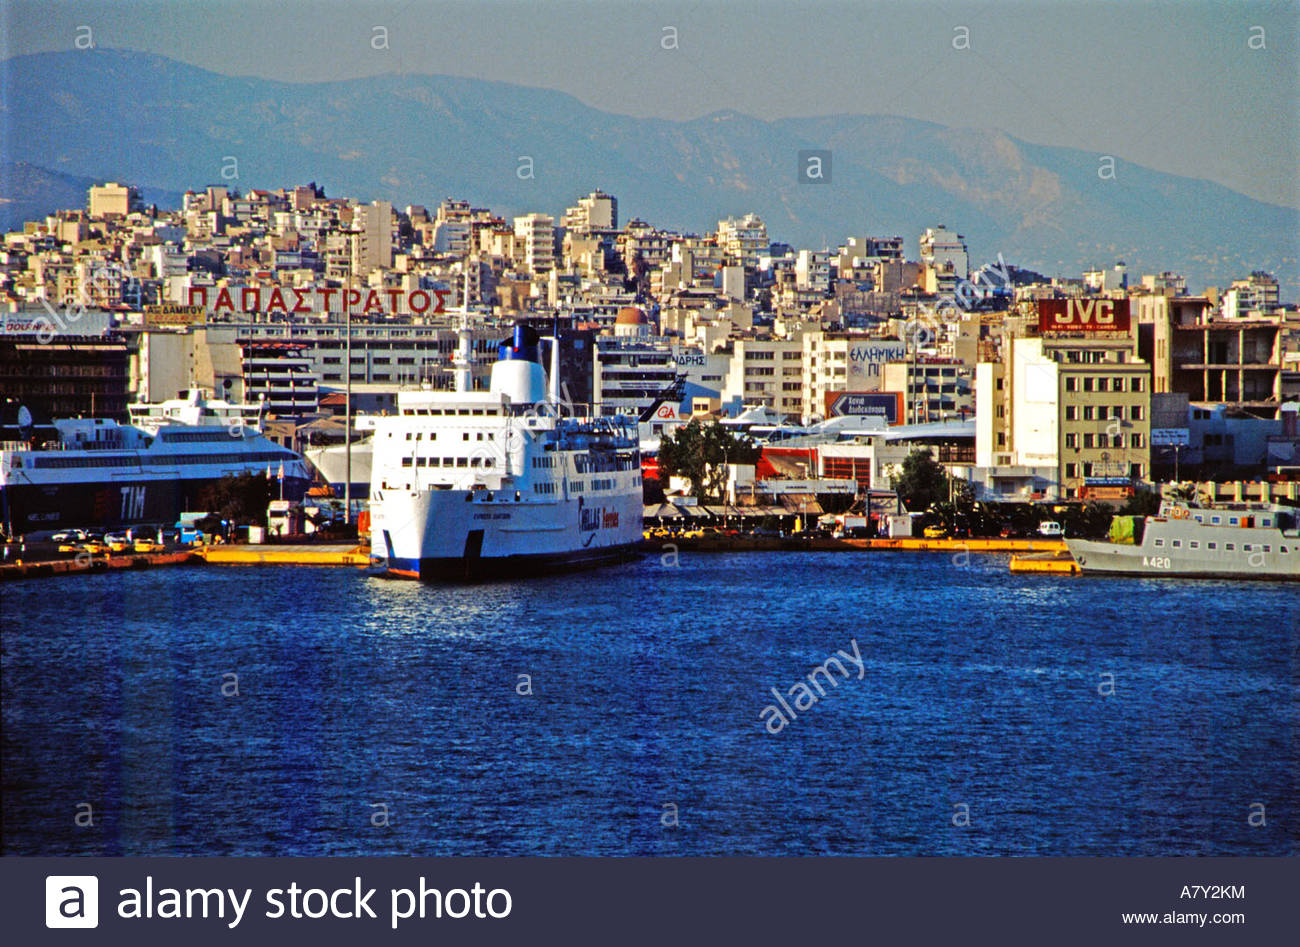 Greece Aegean Sea Athens Port City Of Pireaus Pireas Located - Where is athens located